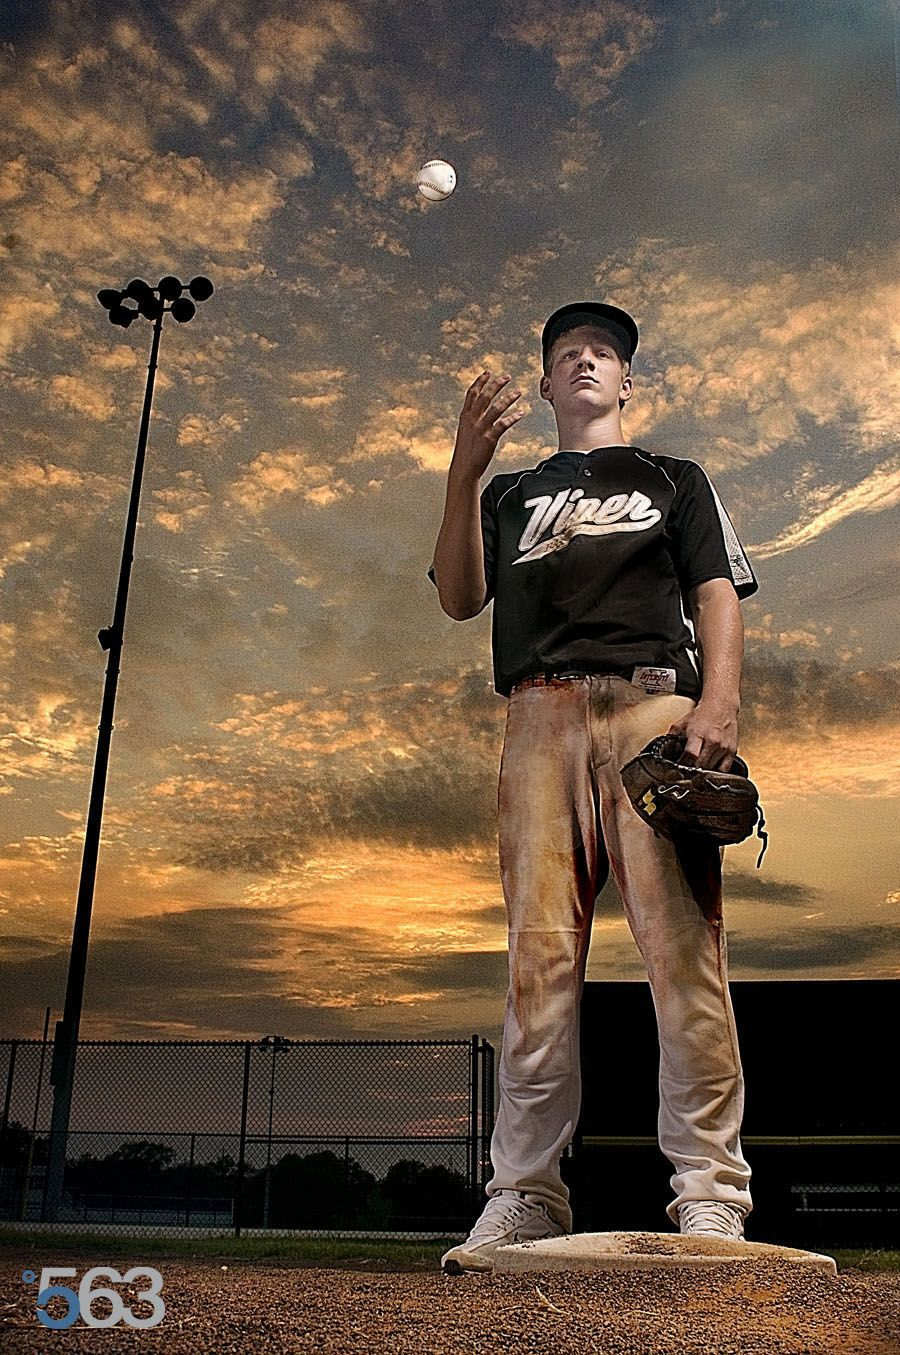 Senior Action Baseball Picture Ideas Bing In 2020 With Images Baseball Senior Pictures Senior Pictures Poses